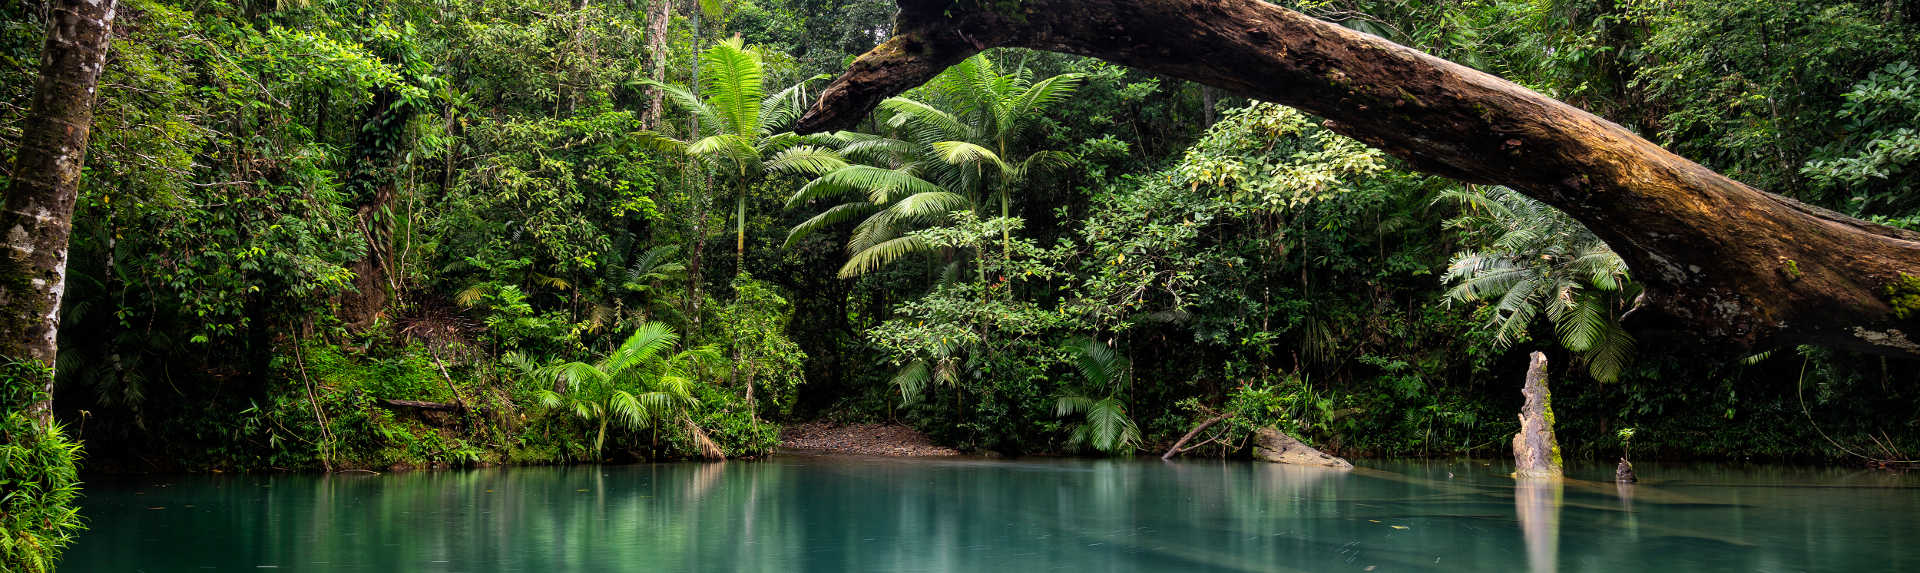 What is the best time to visit the Daintree rainforest?